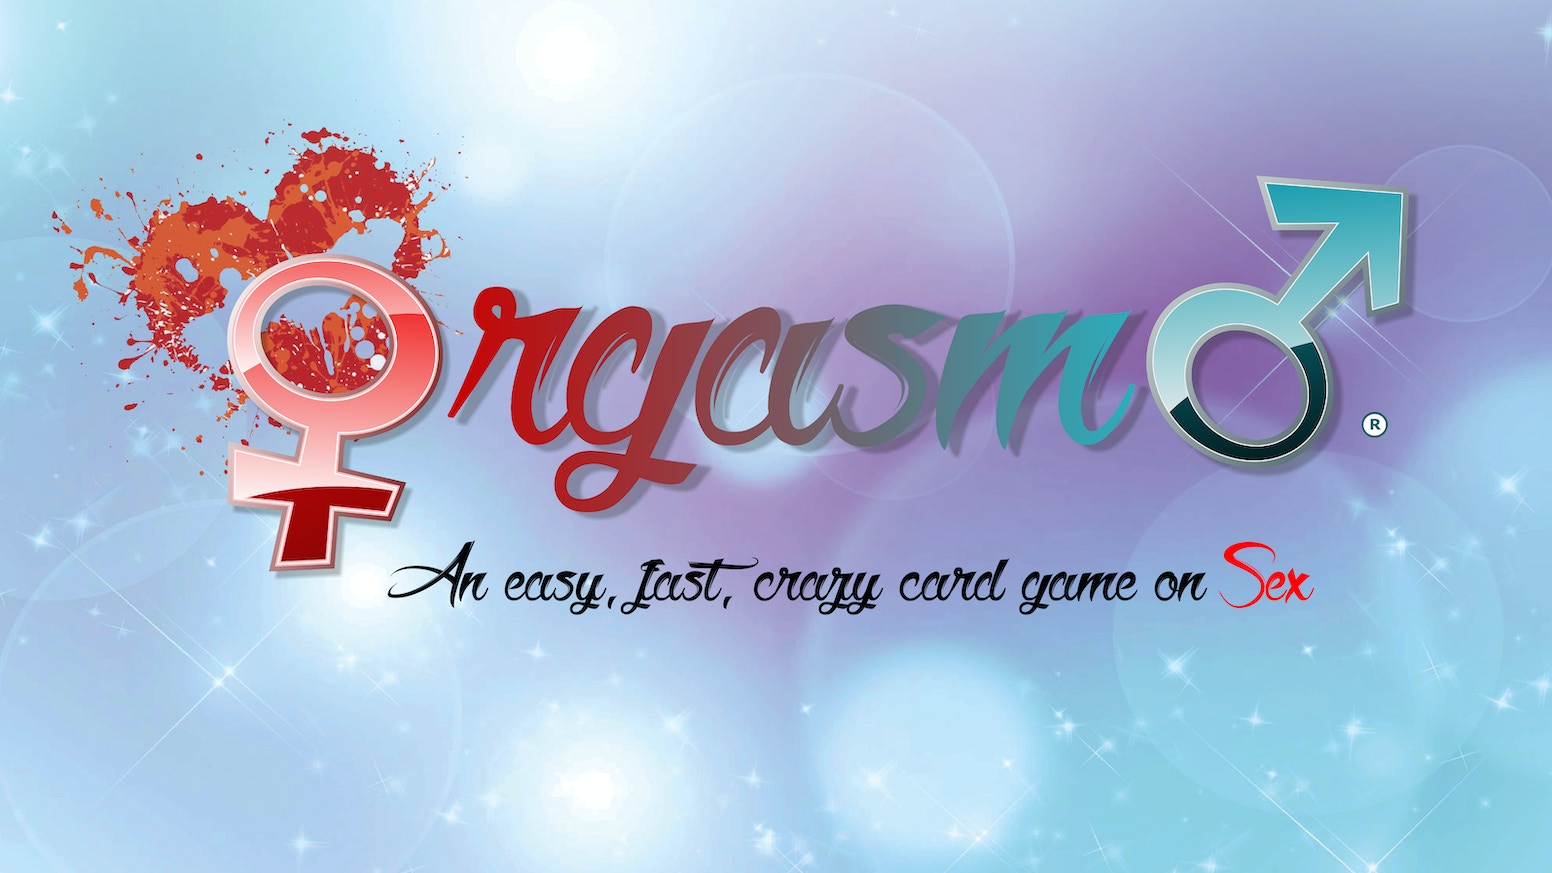 Help Vice Games bring the joy of Orgasmo, a fun, fast and easy game about orgies, to an English-speaking audience!